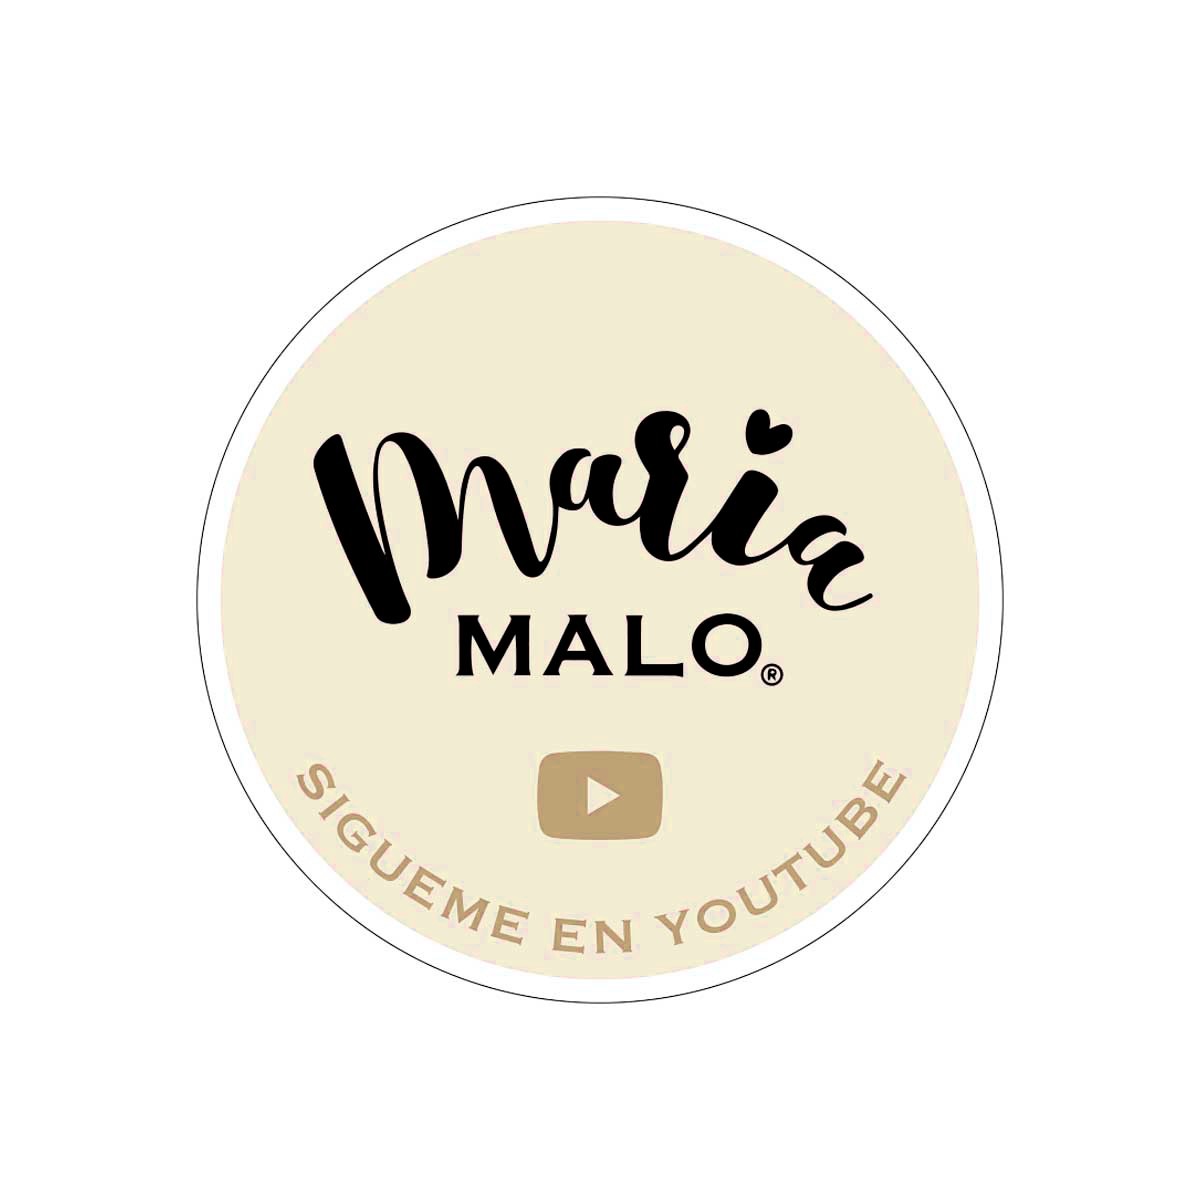 https://www.mariamalo.es/wp-content/uploads/2021/02/01_maria-malo-youtube.png